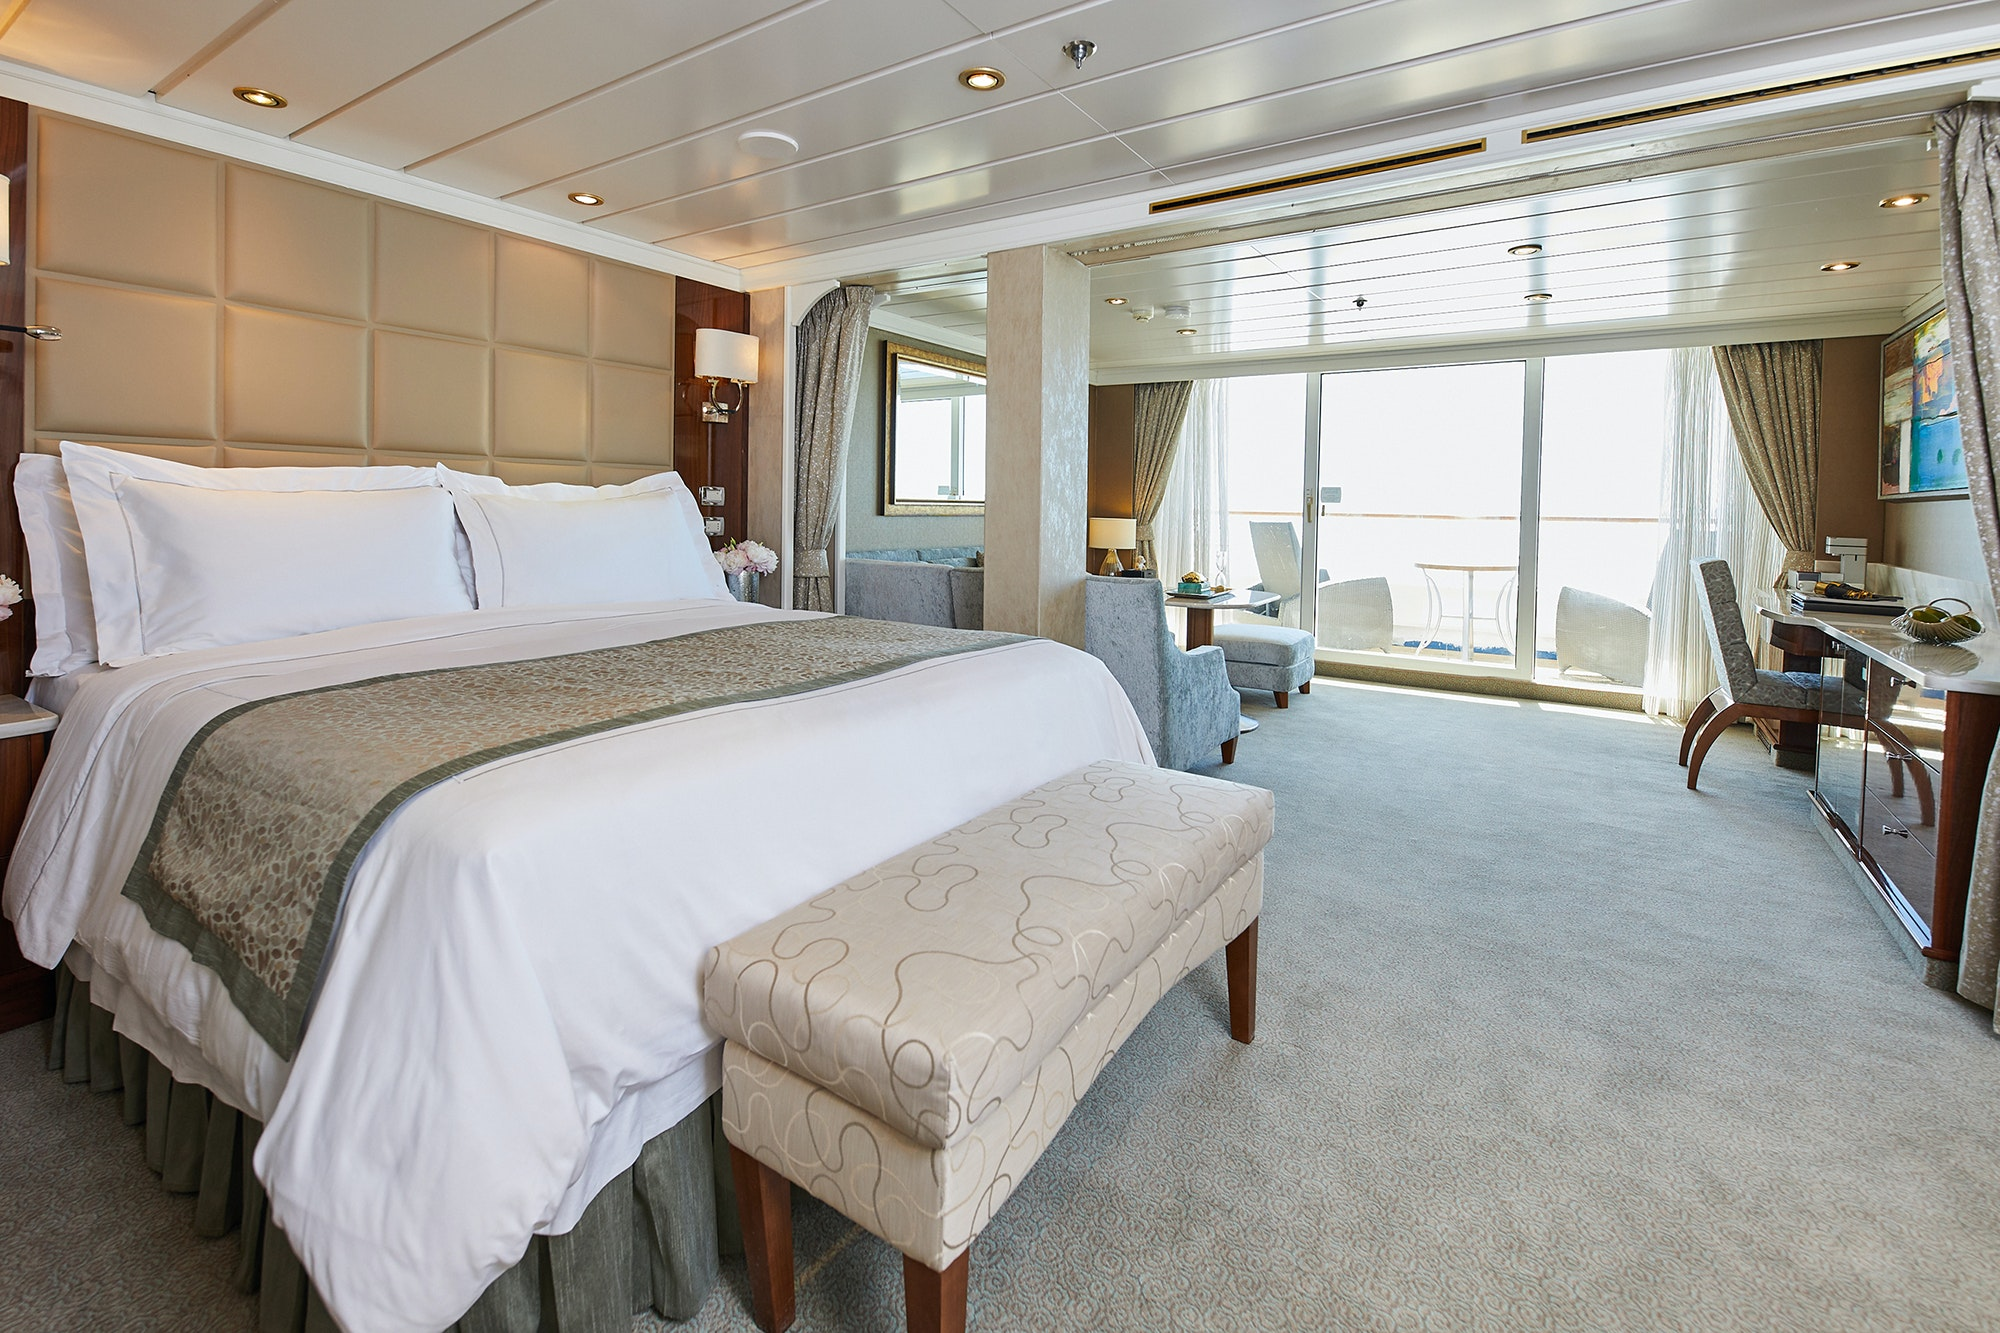 All cabins on the Seven Seas Mariner are suites with private balconies.